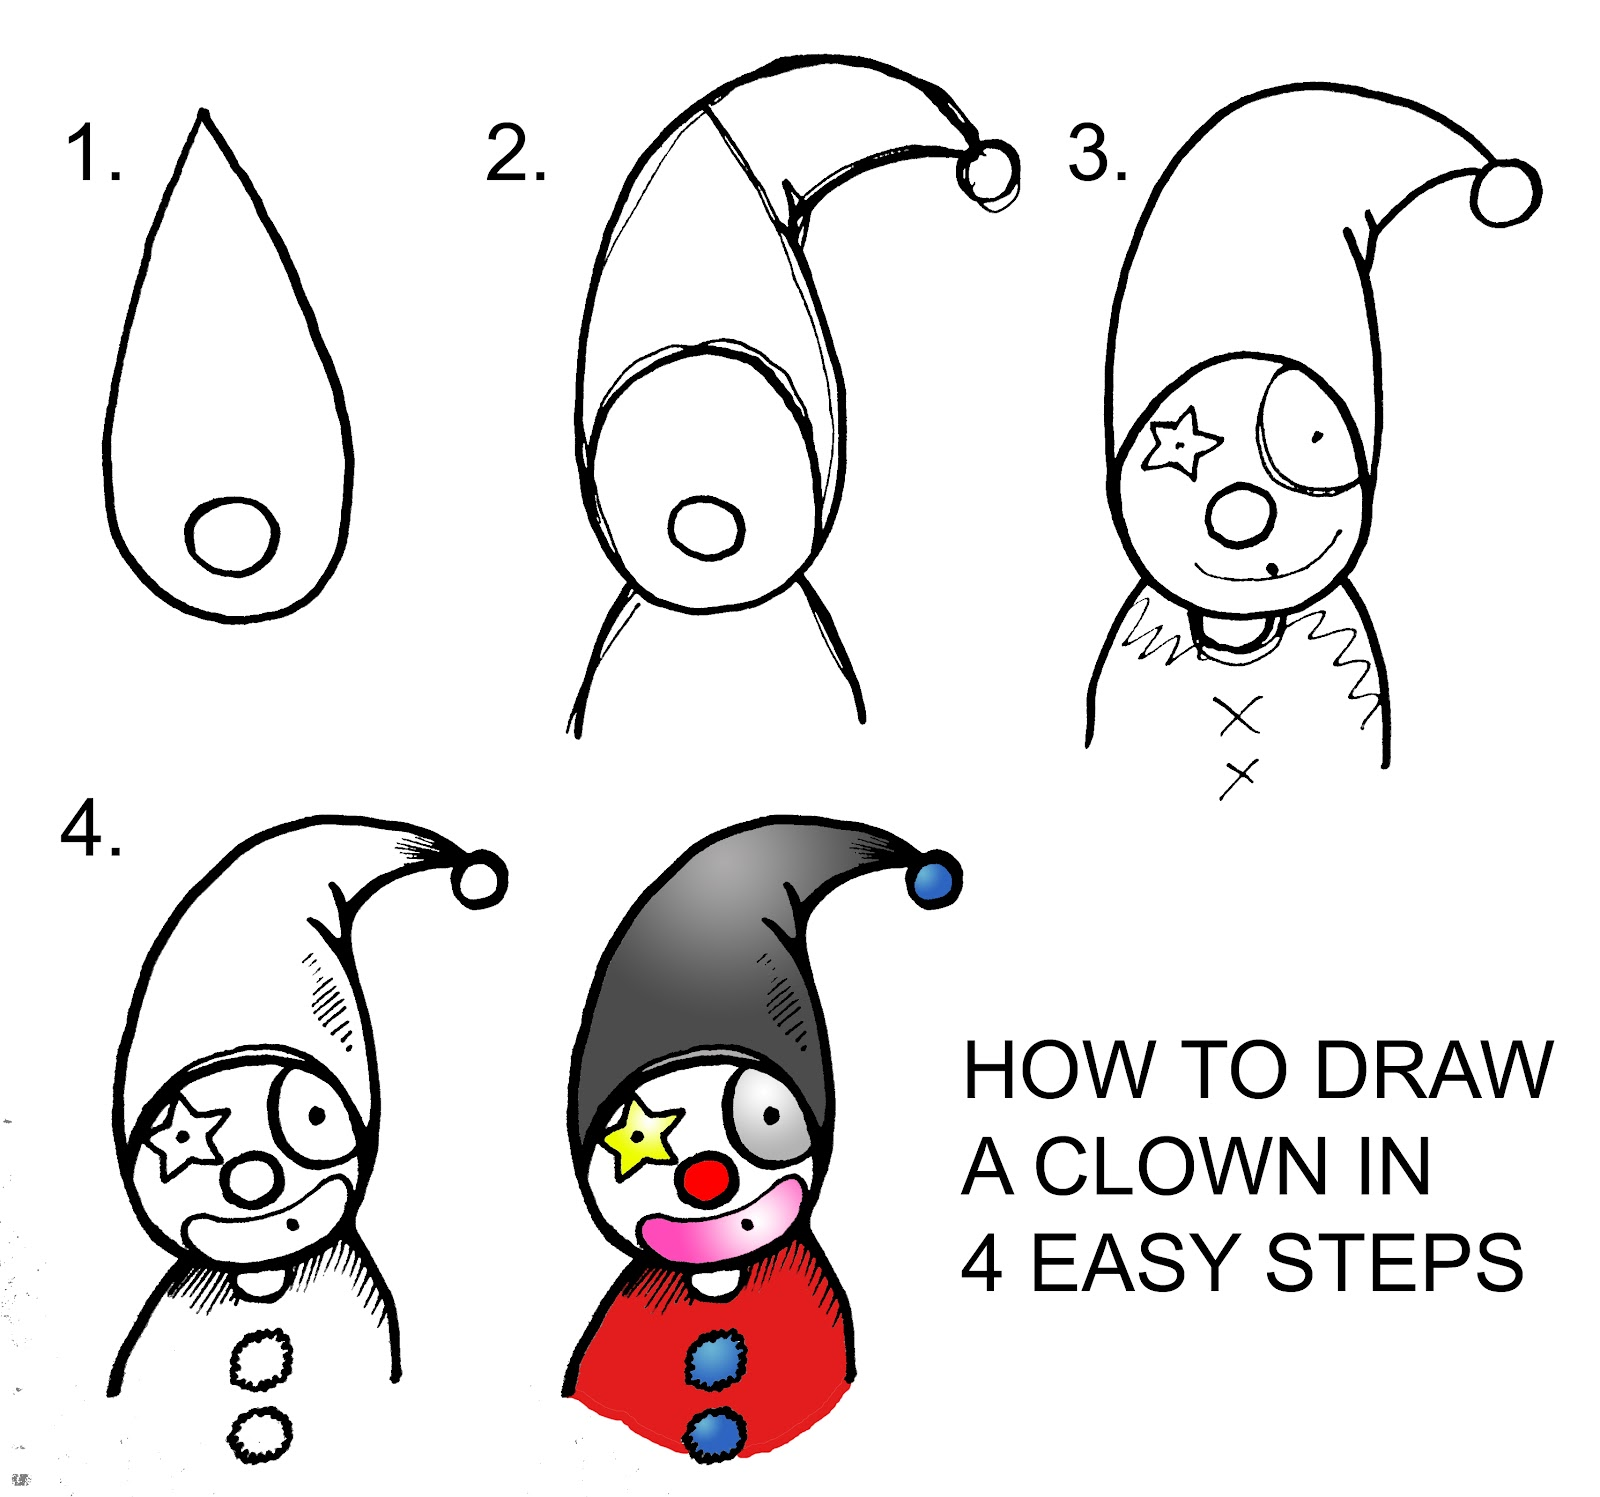 Daryl Hobson Artwork How To Draw A Clown Step By Step